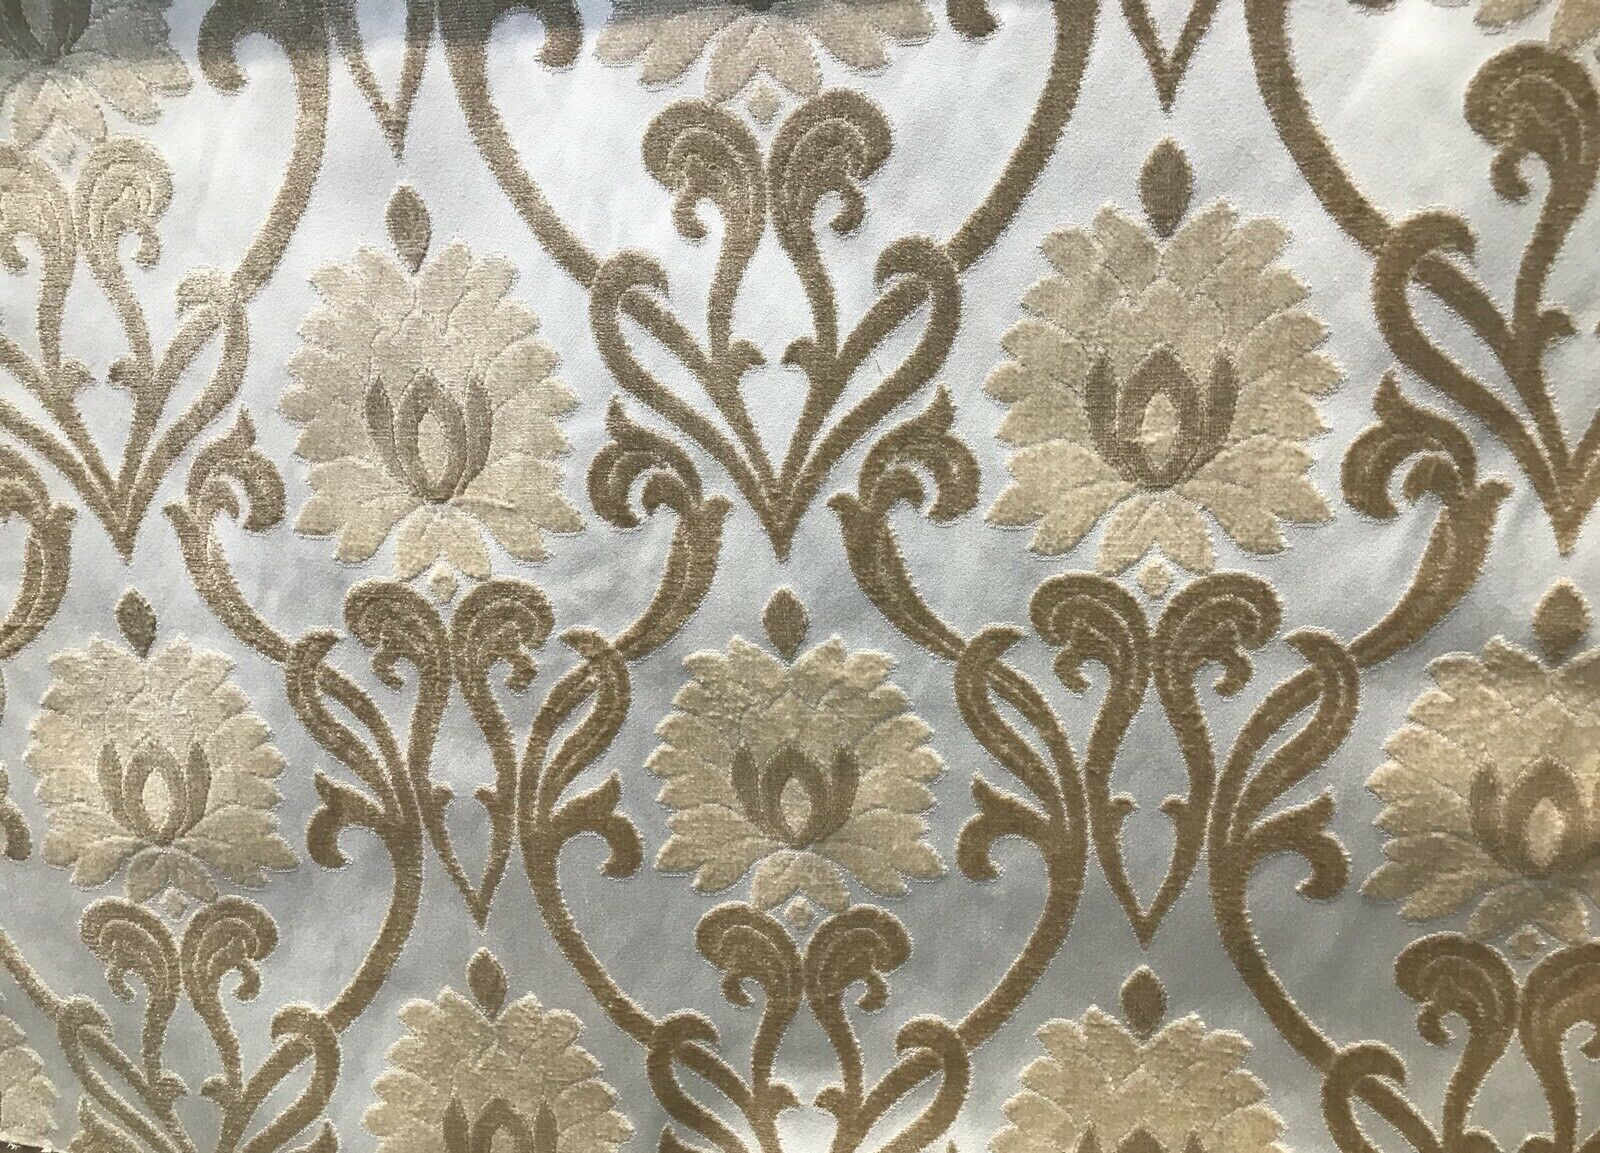 SWATCH Designer Brocade Burnout Chenille Fabric- Damask - Beige Upholstery